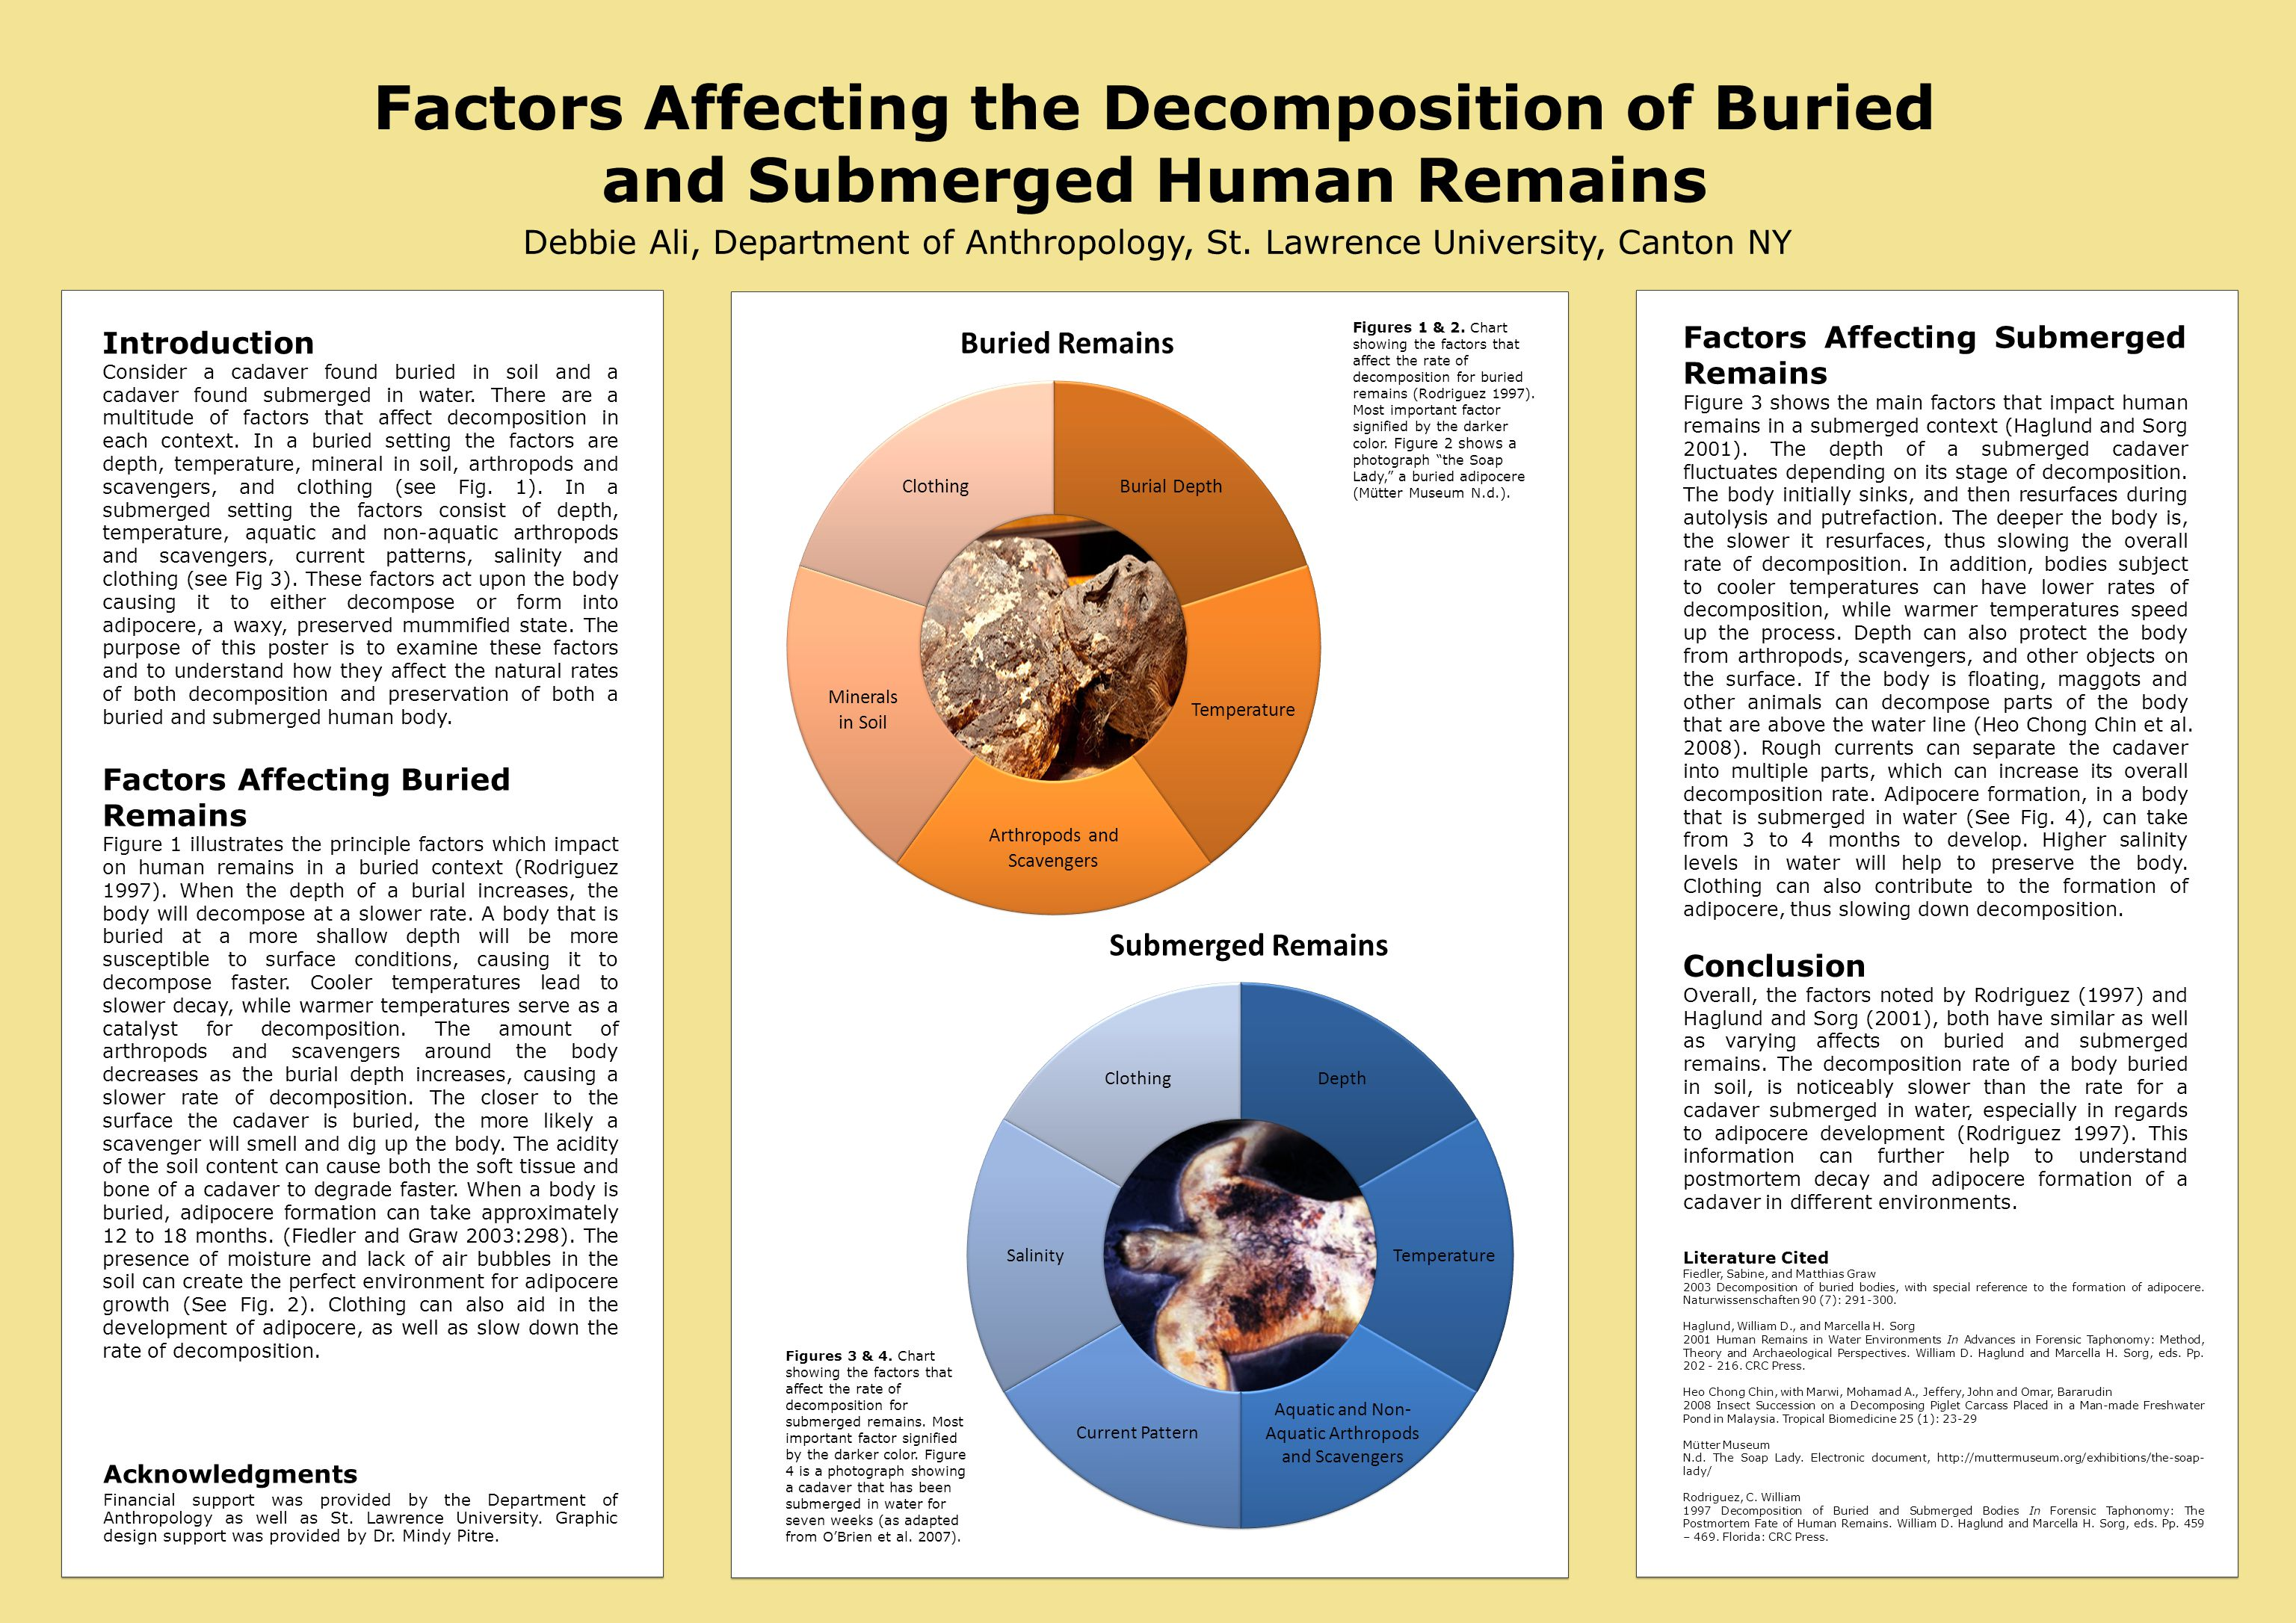 Factors Affecting the Decomposition of Buried